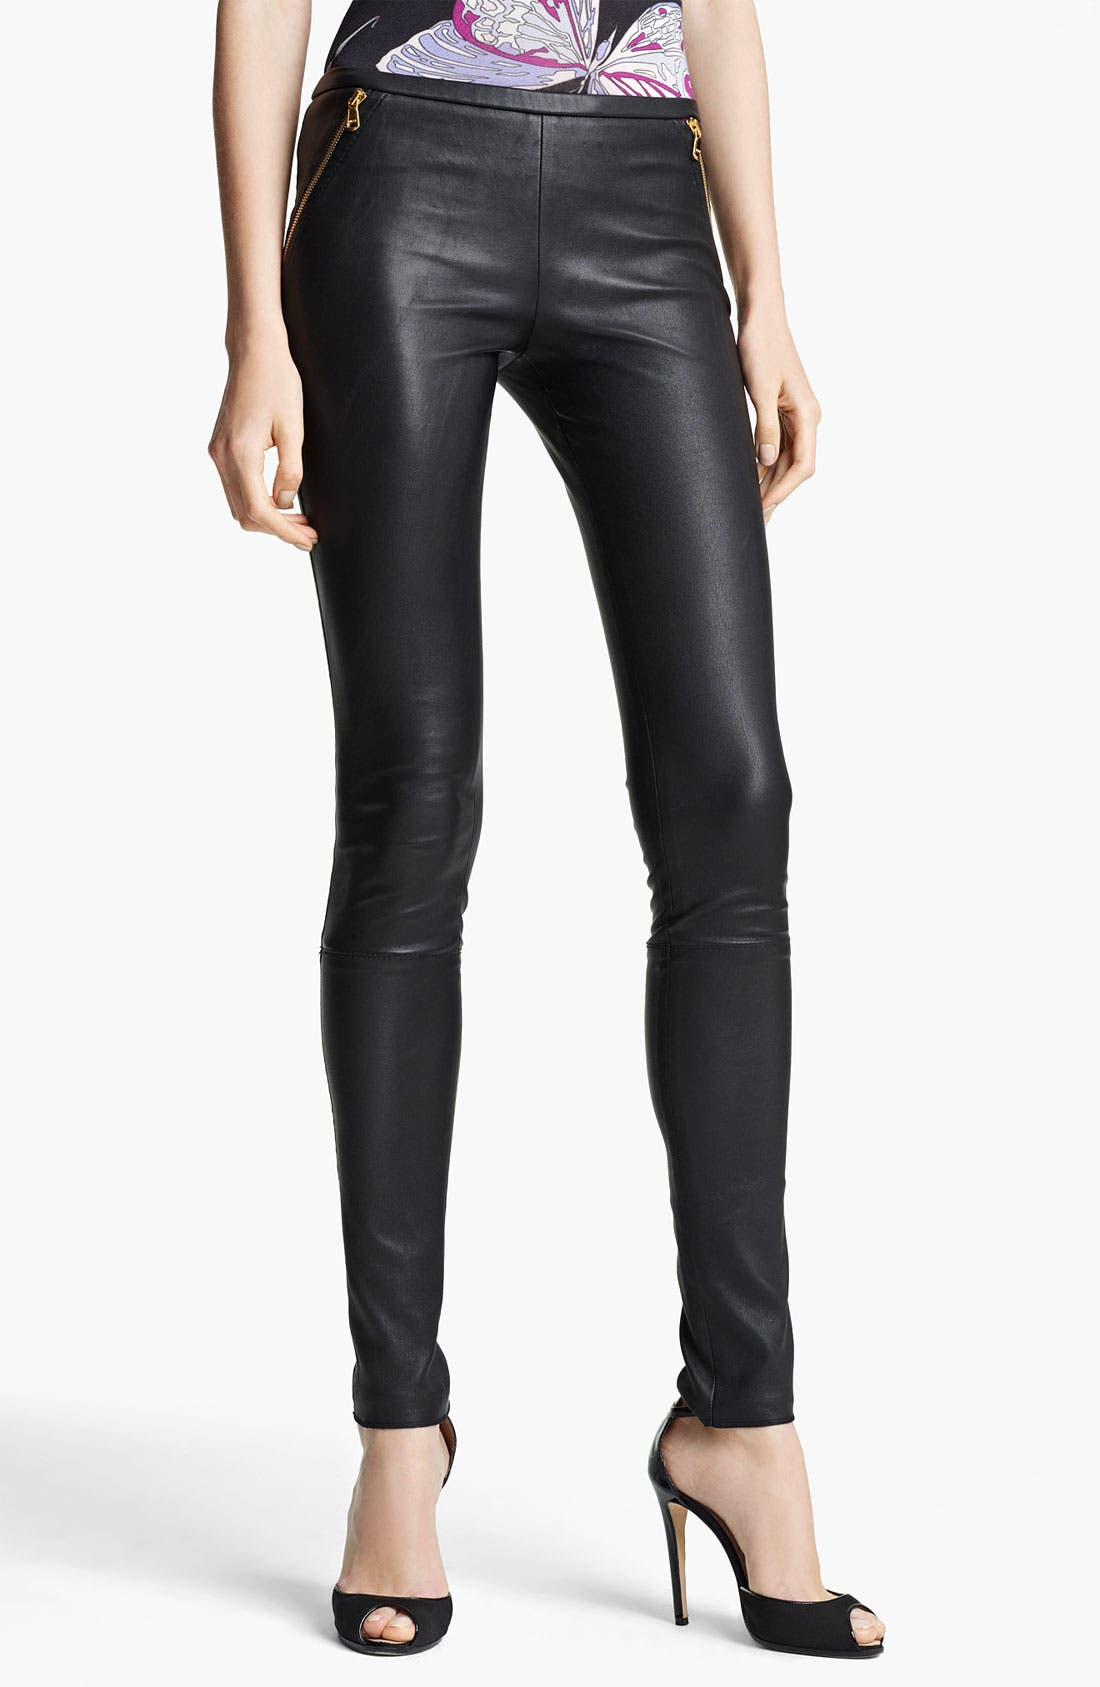 Alternate Image 1 Selected - Emilio Pucci Lambskin Leather Leggings